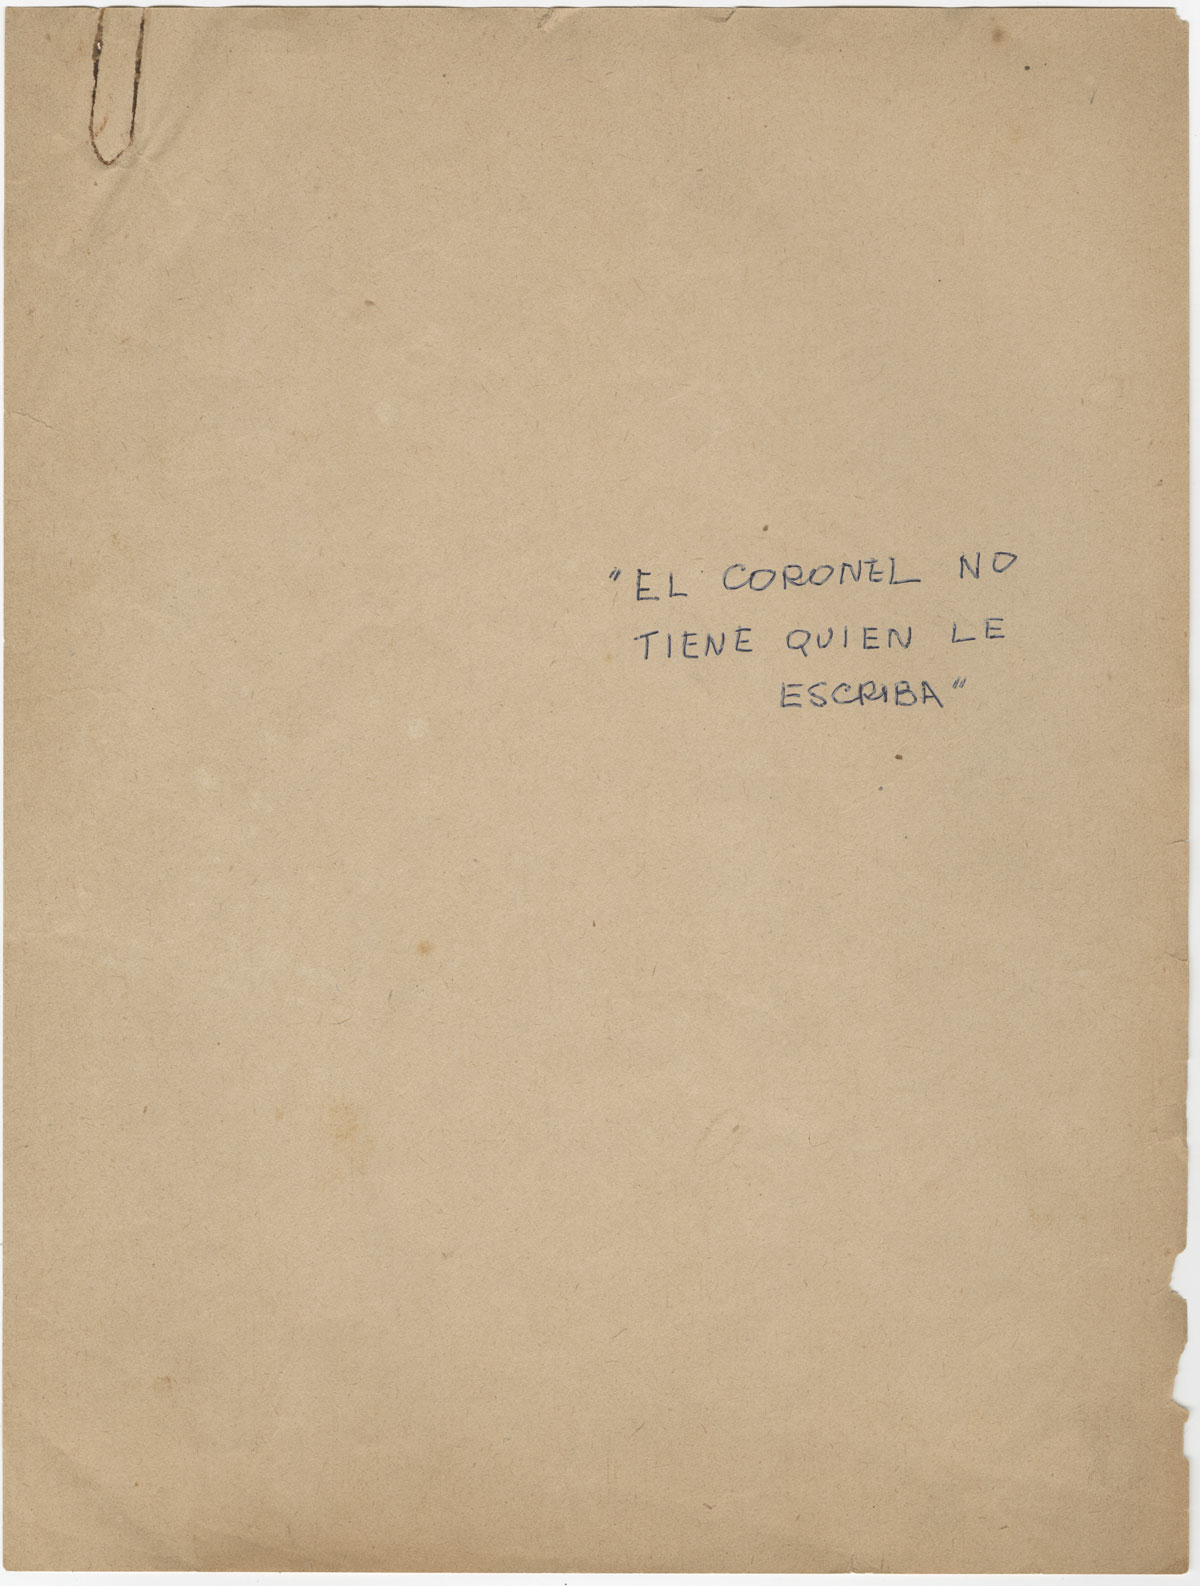 The cover of the carbon typescript of El coronel no tiene quien le escriba [No One Writes to the Colonel], 1957.